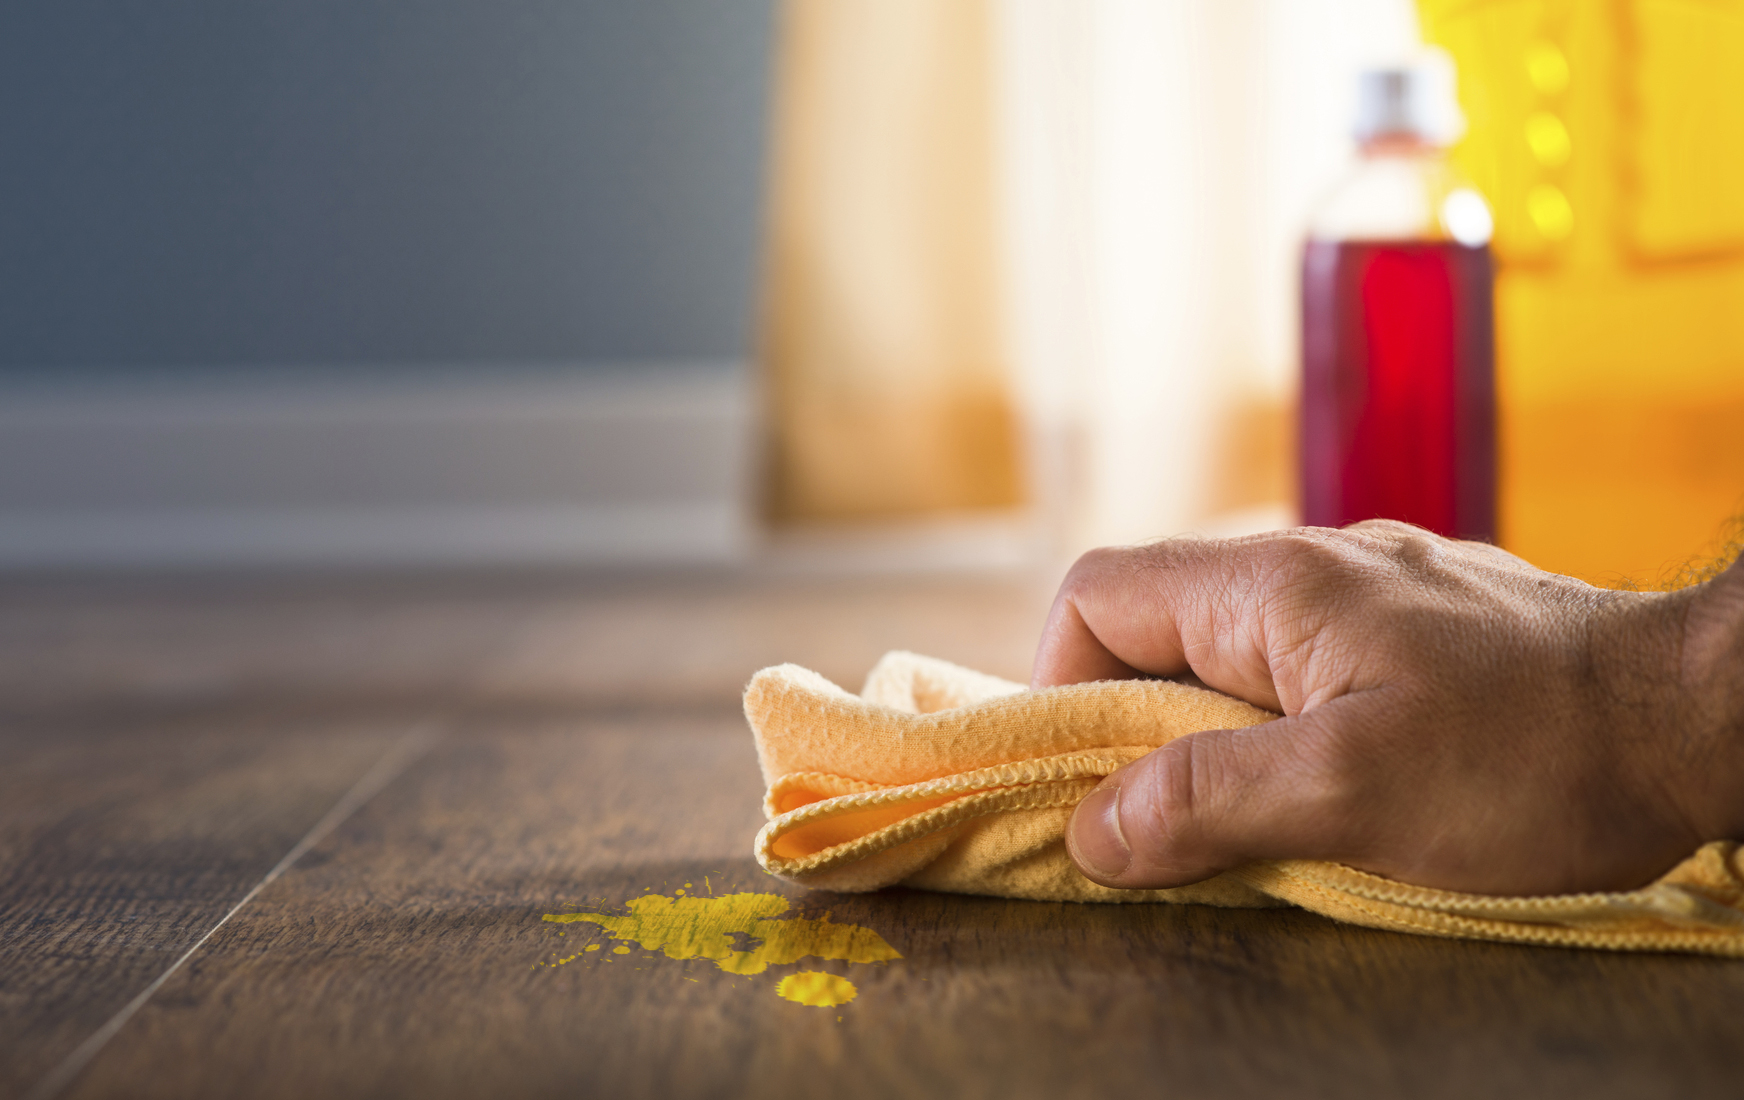 How to remove paint from hardwood floors - How To Remove Paint From Hardwood Floors 50